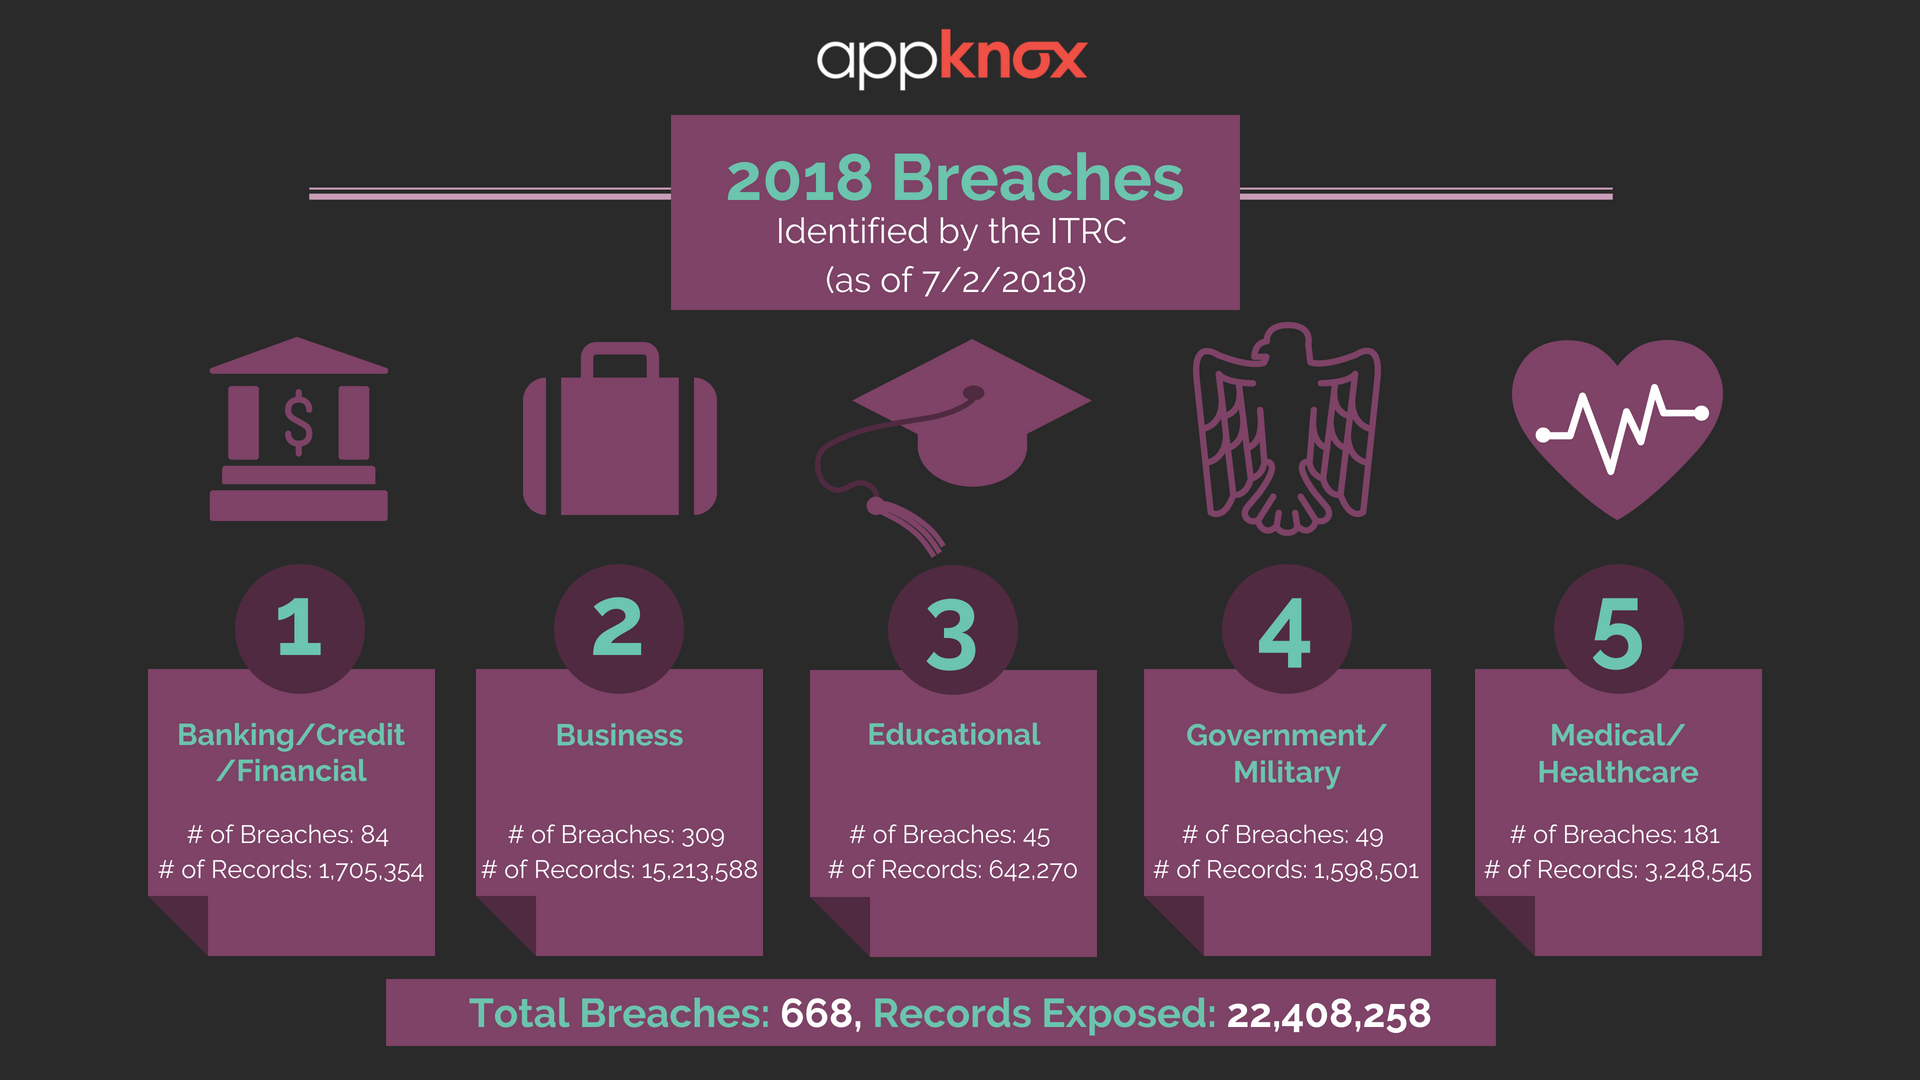 2018 data breaches